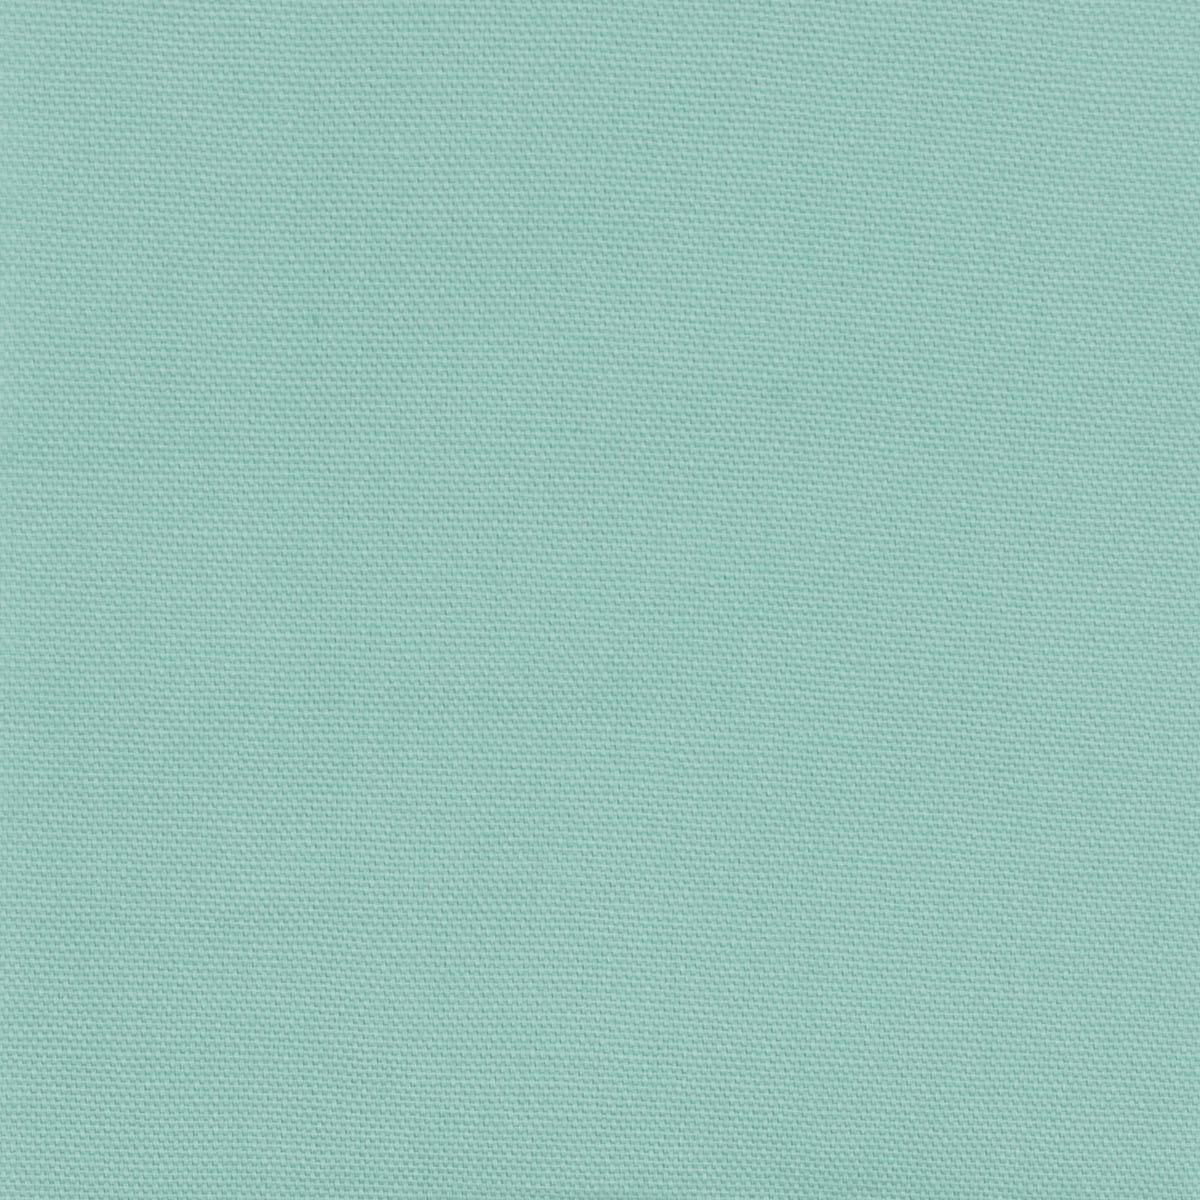 Turquoise panama curtain fabric cotton light blue cheap uk delivery